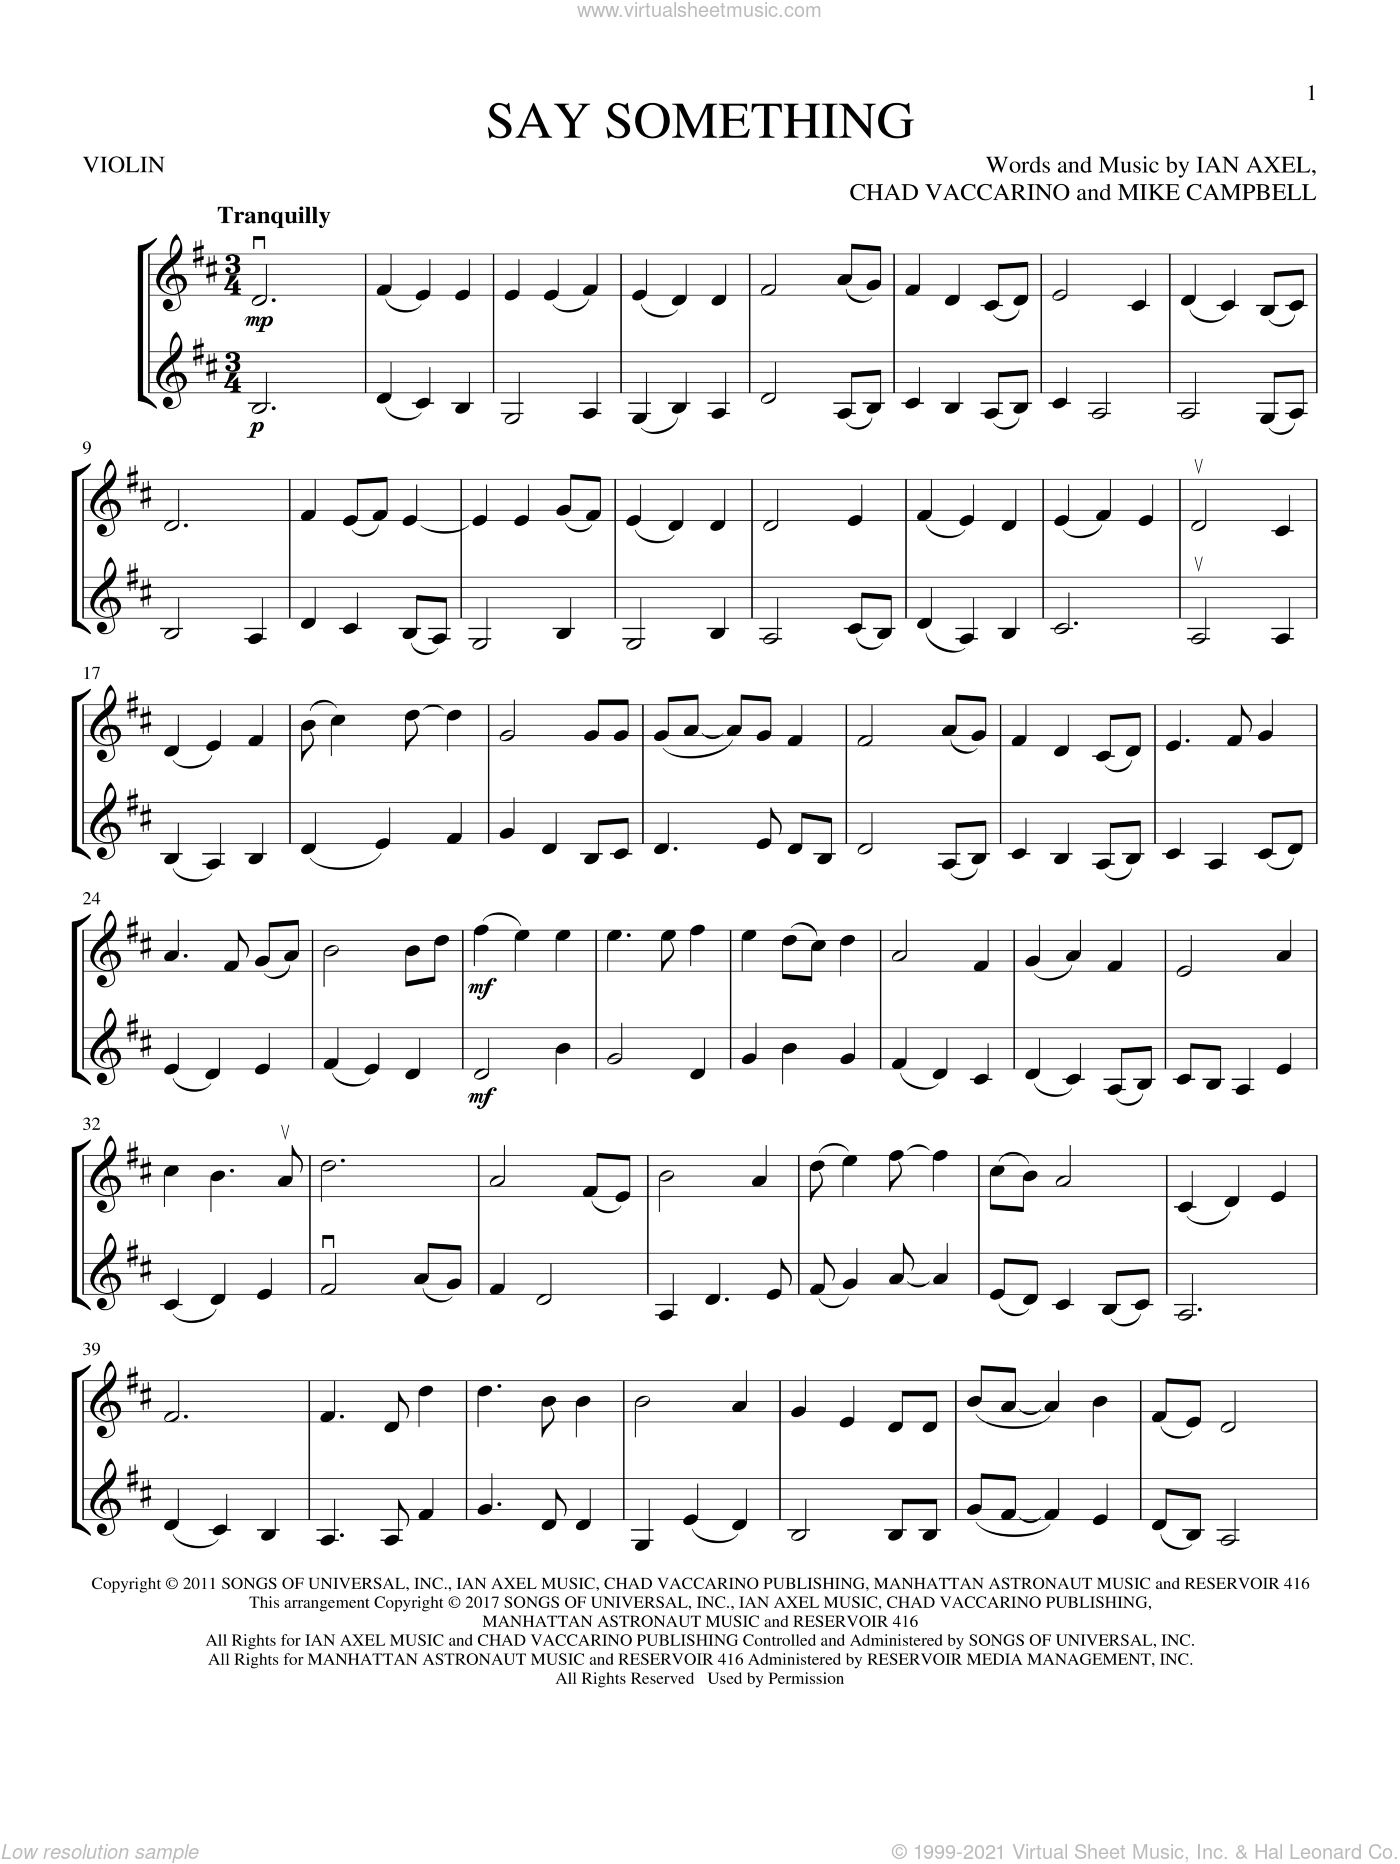 Say Something sheet music for two violins (duets, violin duets) by A Great Big World, Chad Vaccarino, Ian Axel and Mike Campbell, intermediate skill level